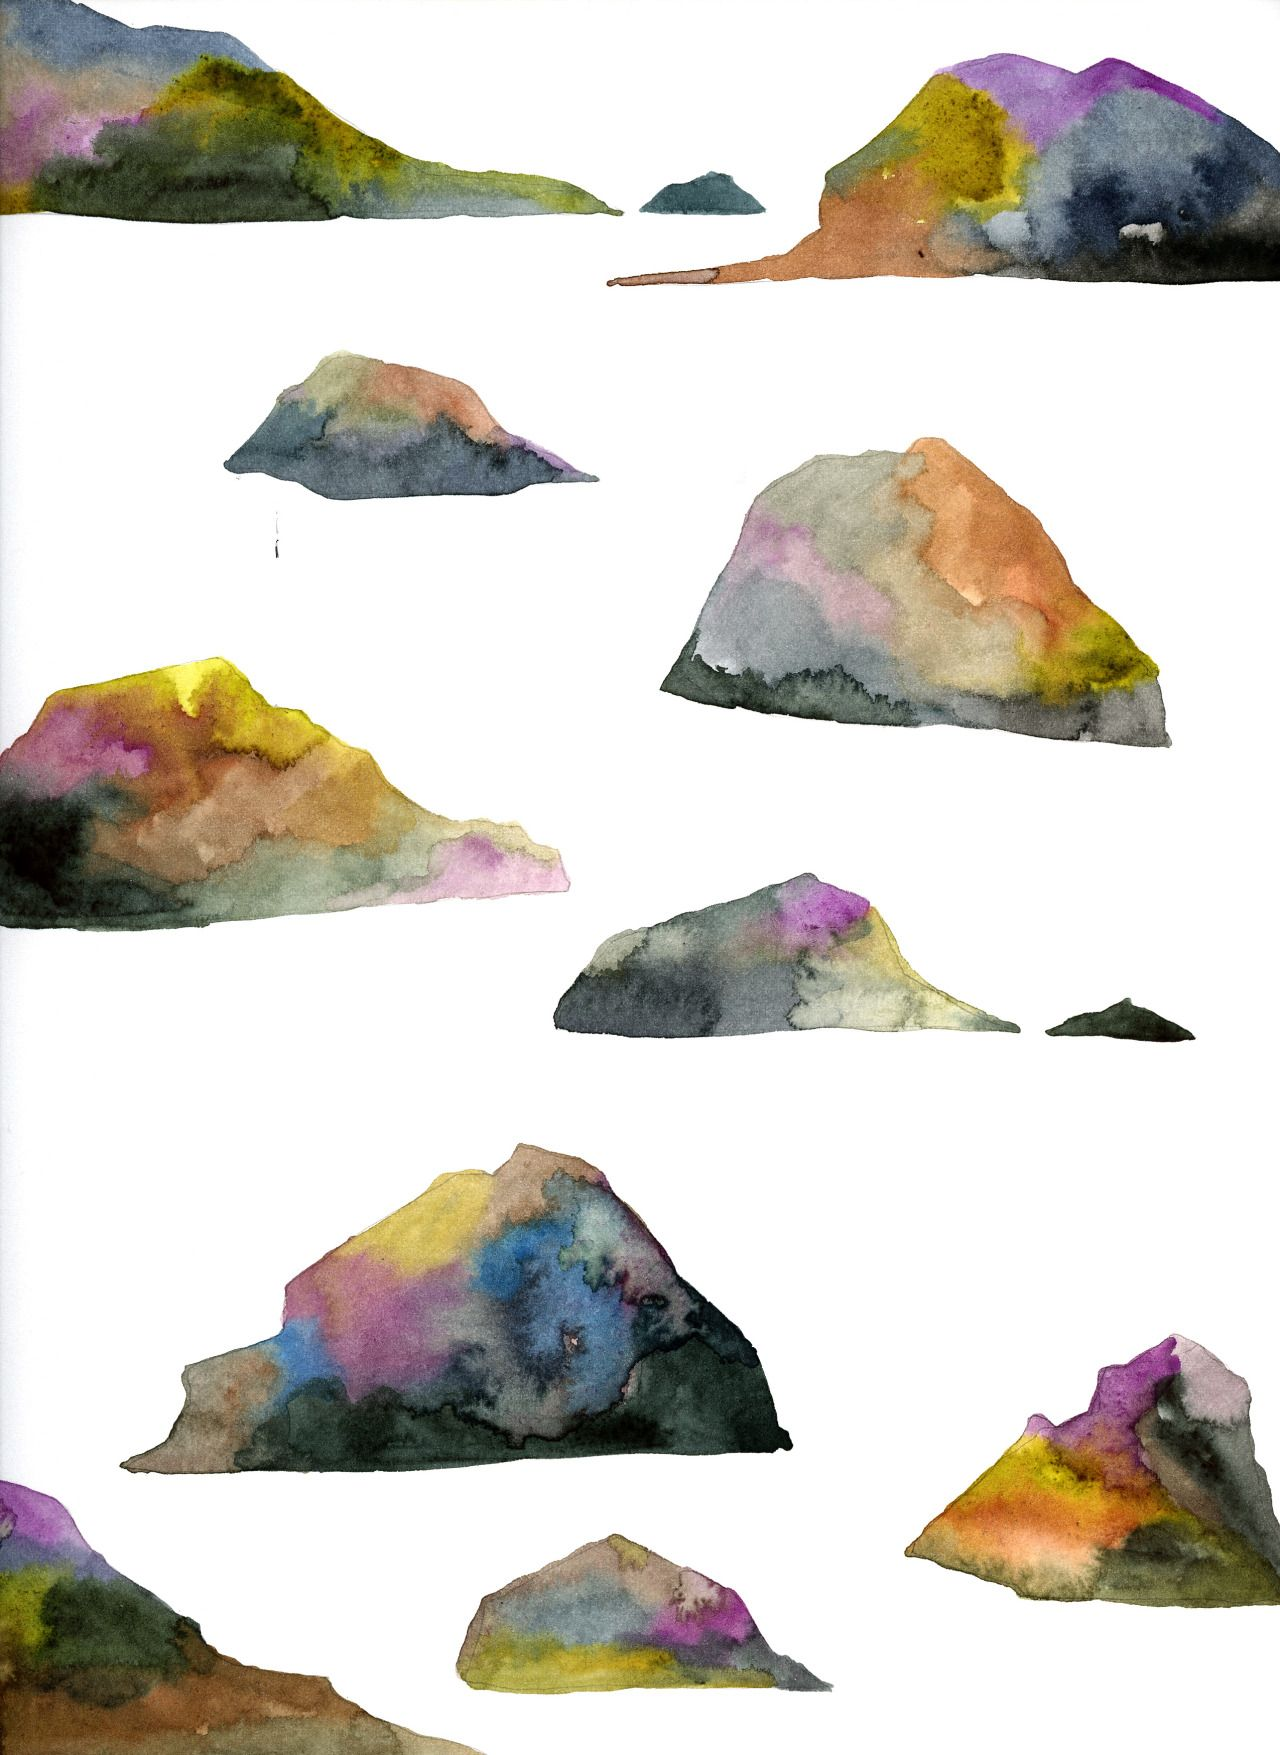 New Limited Edition Archival Beach Rocks Print Up In The Webshop